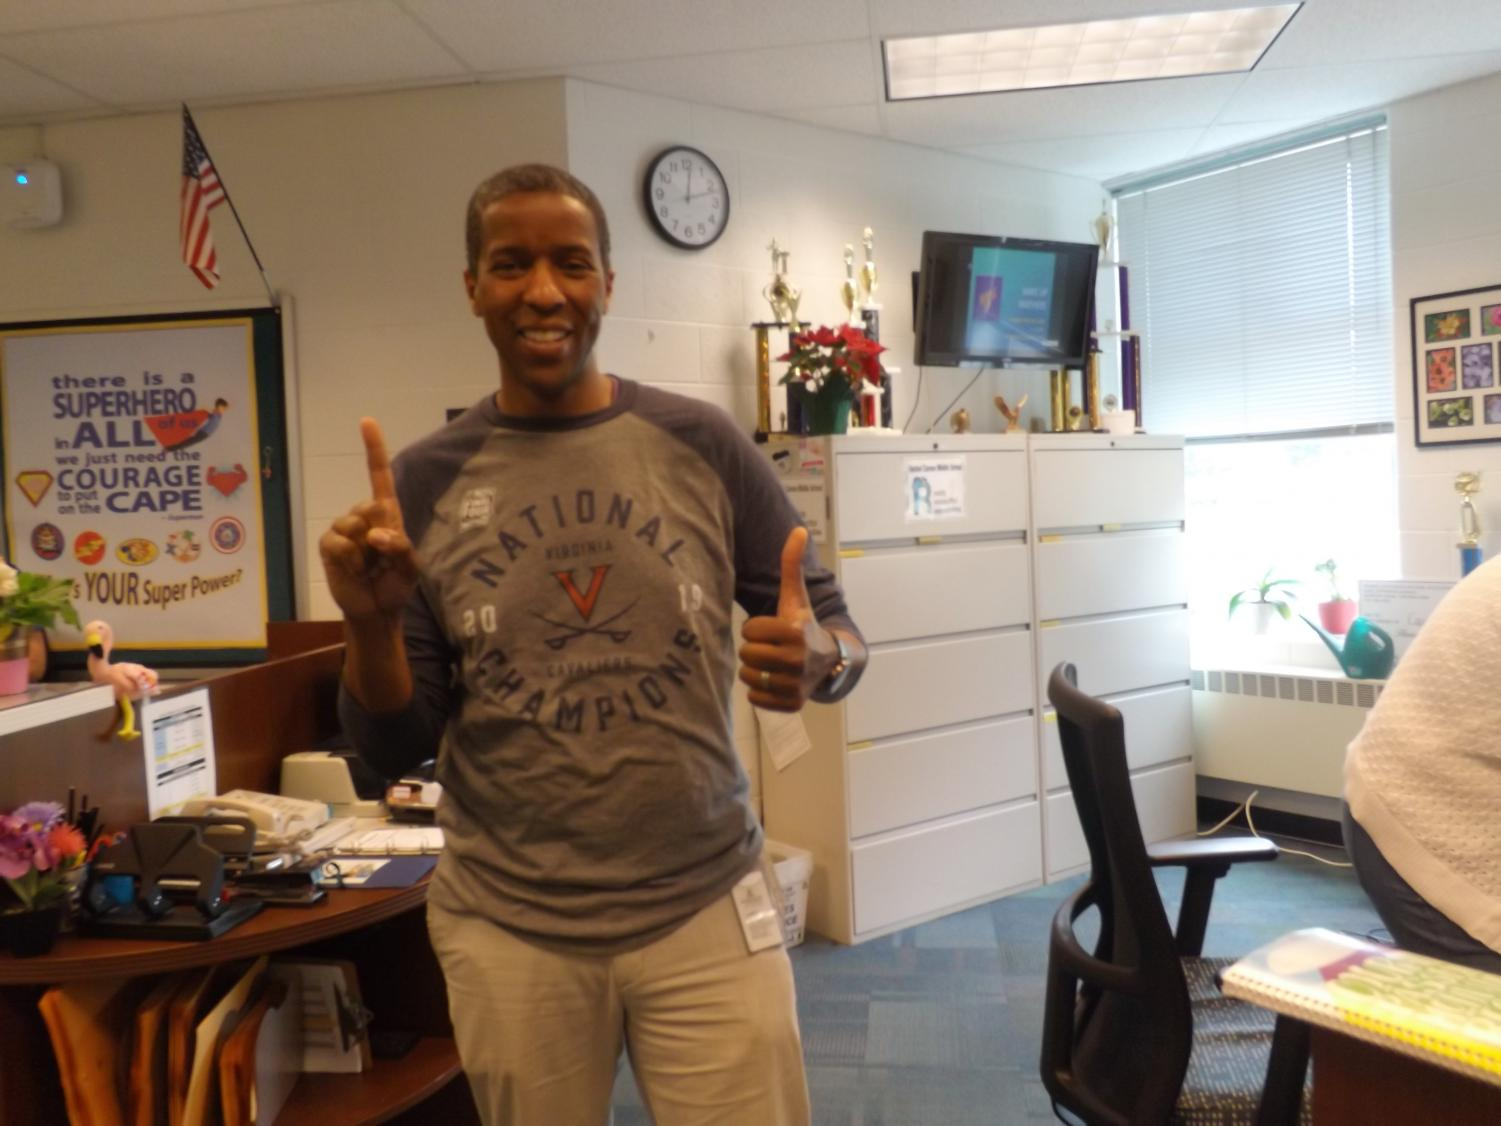 Mr. Stokes in his Virginia National Champions  T-shirt as he celebrates the win over Texas Tech